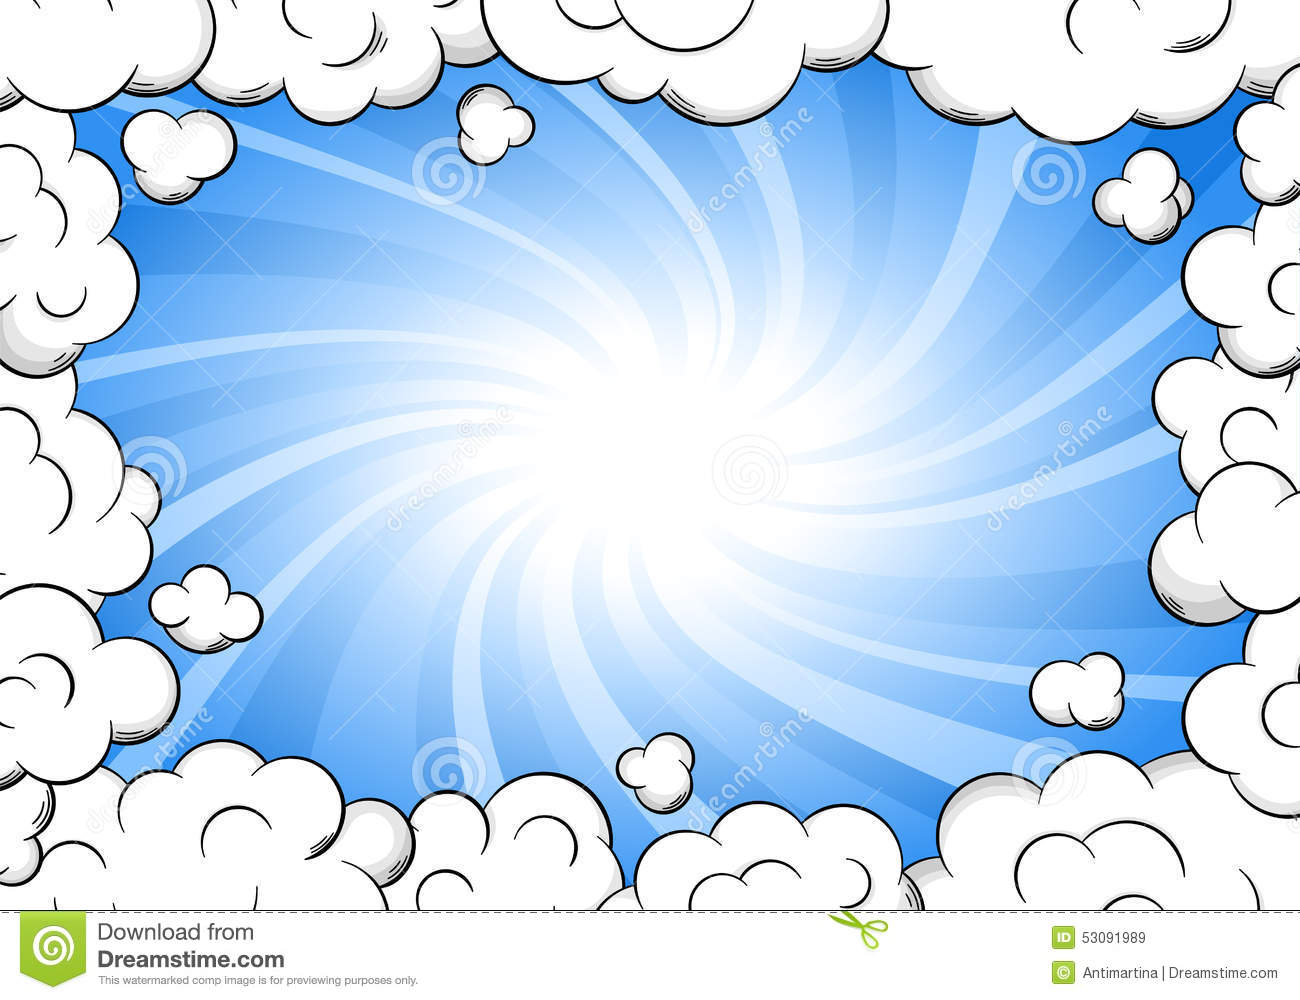 Cloud Frame With Sky As Background Stock Vector - Illustration of ...